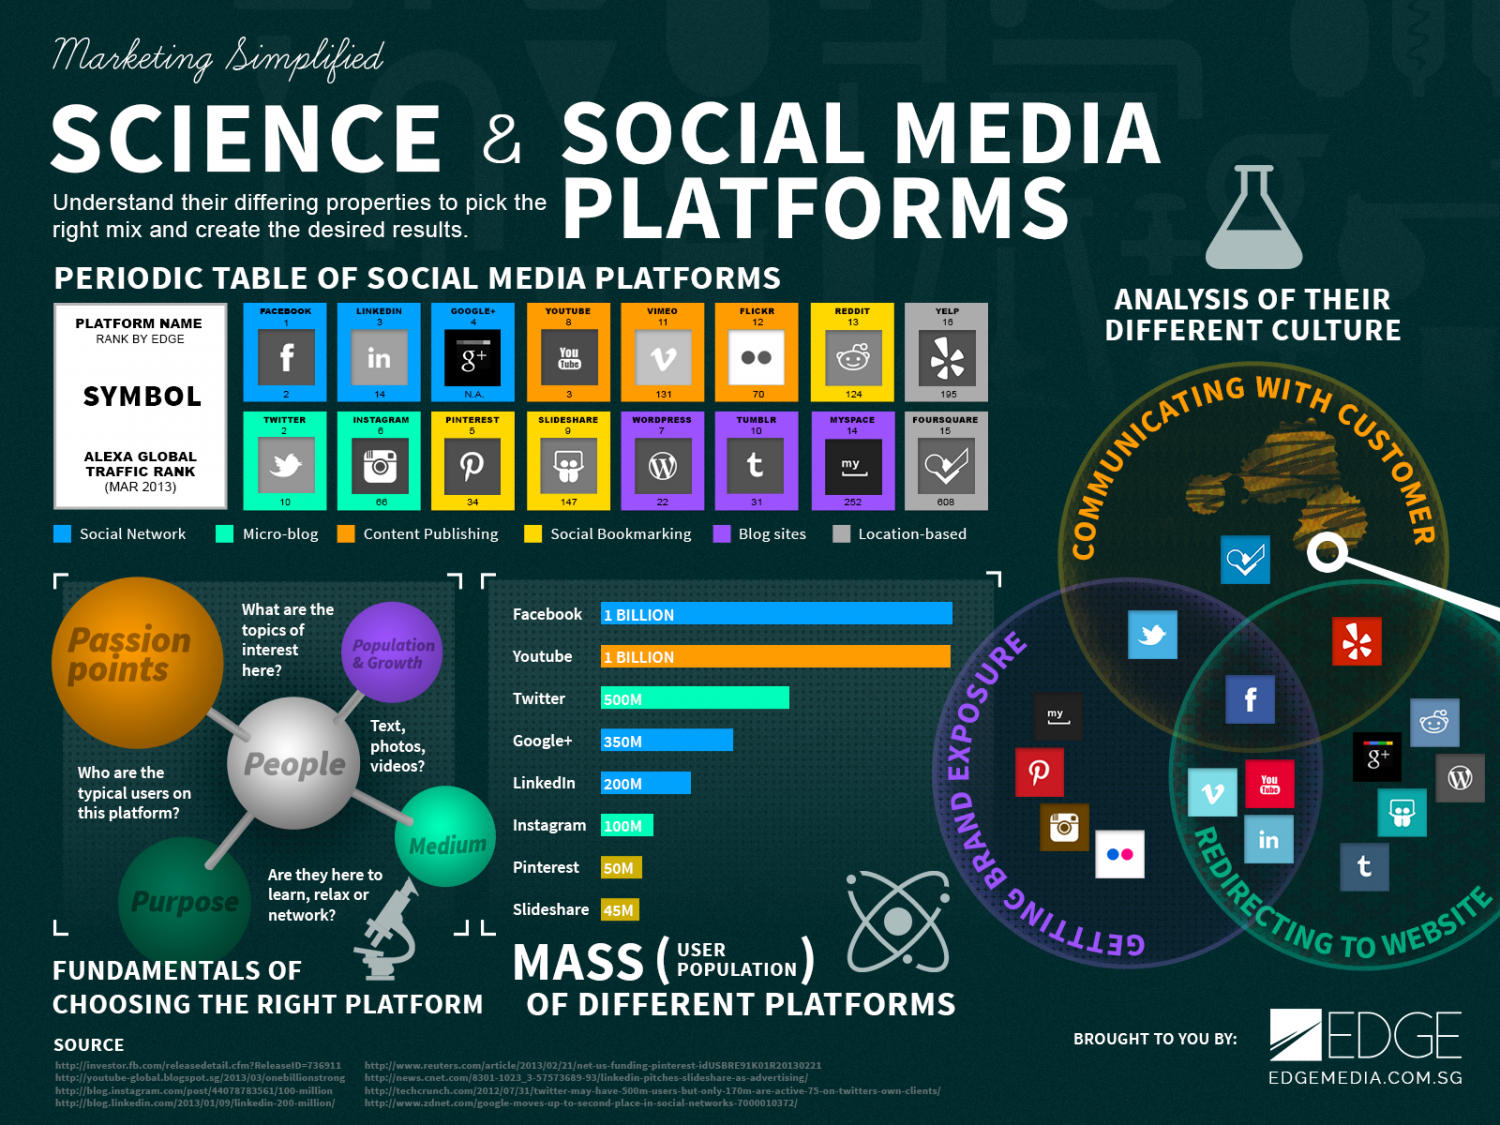 Science and social media platforms | Visual.ly